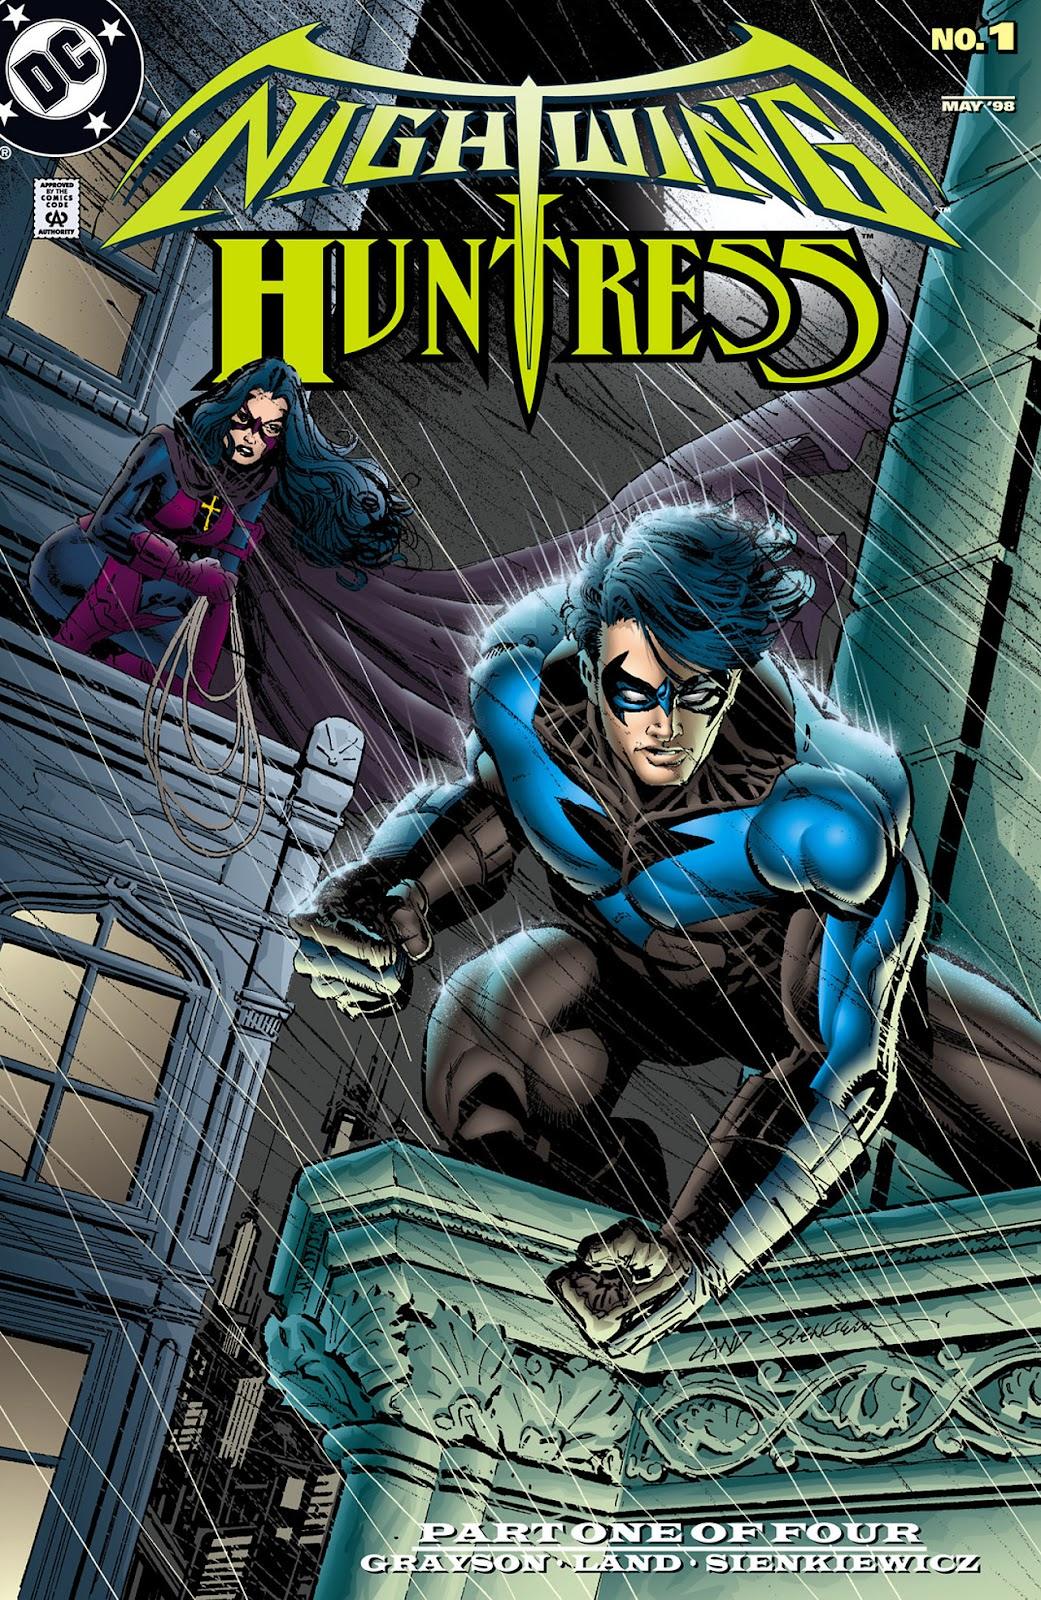 Nightwing and Huntress issue 1 - Page 1